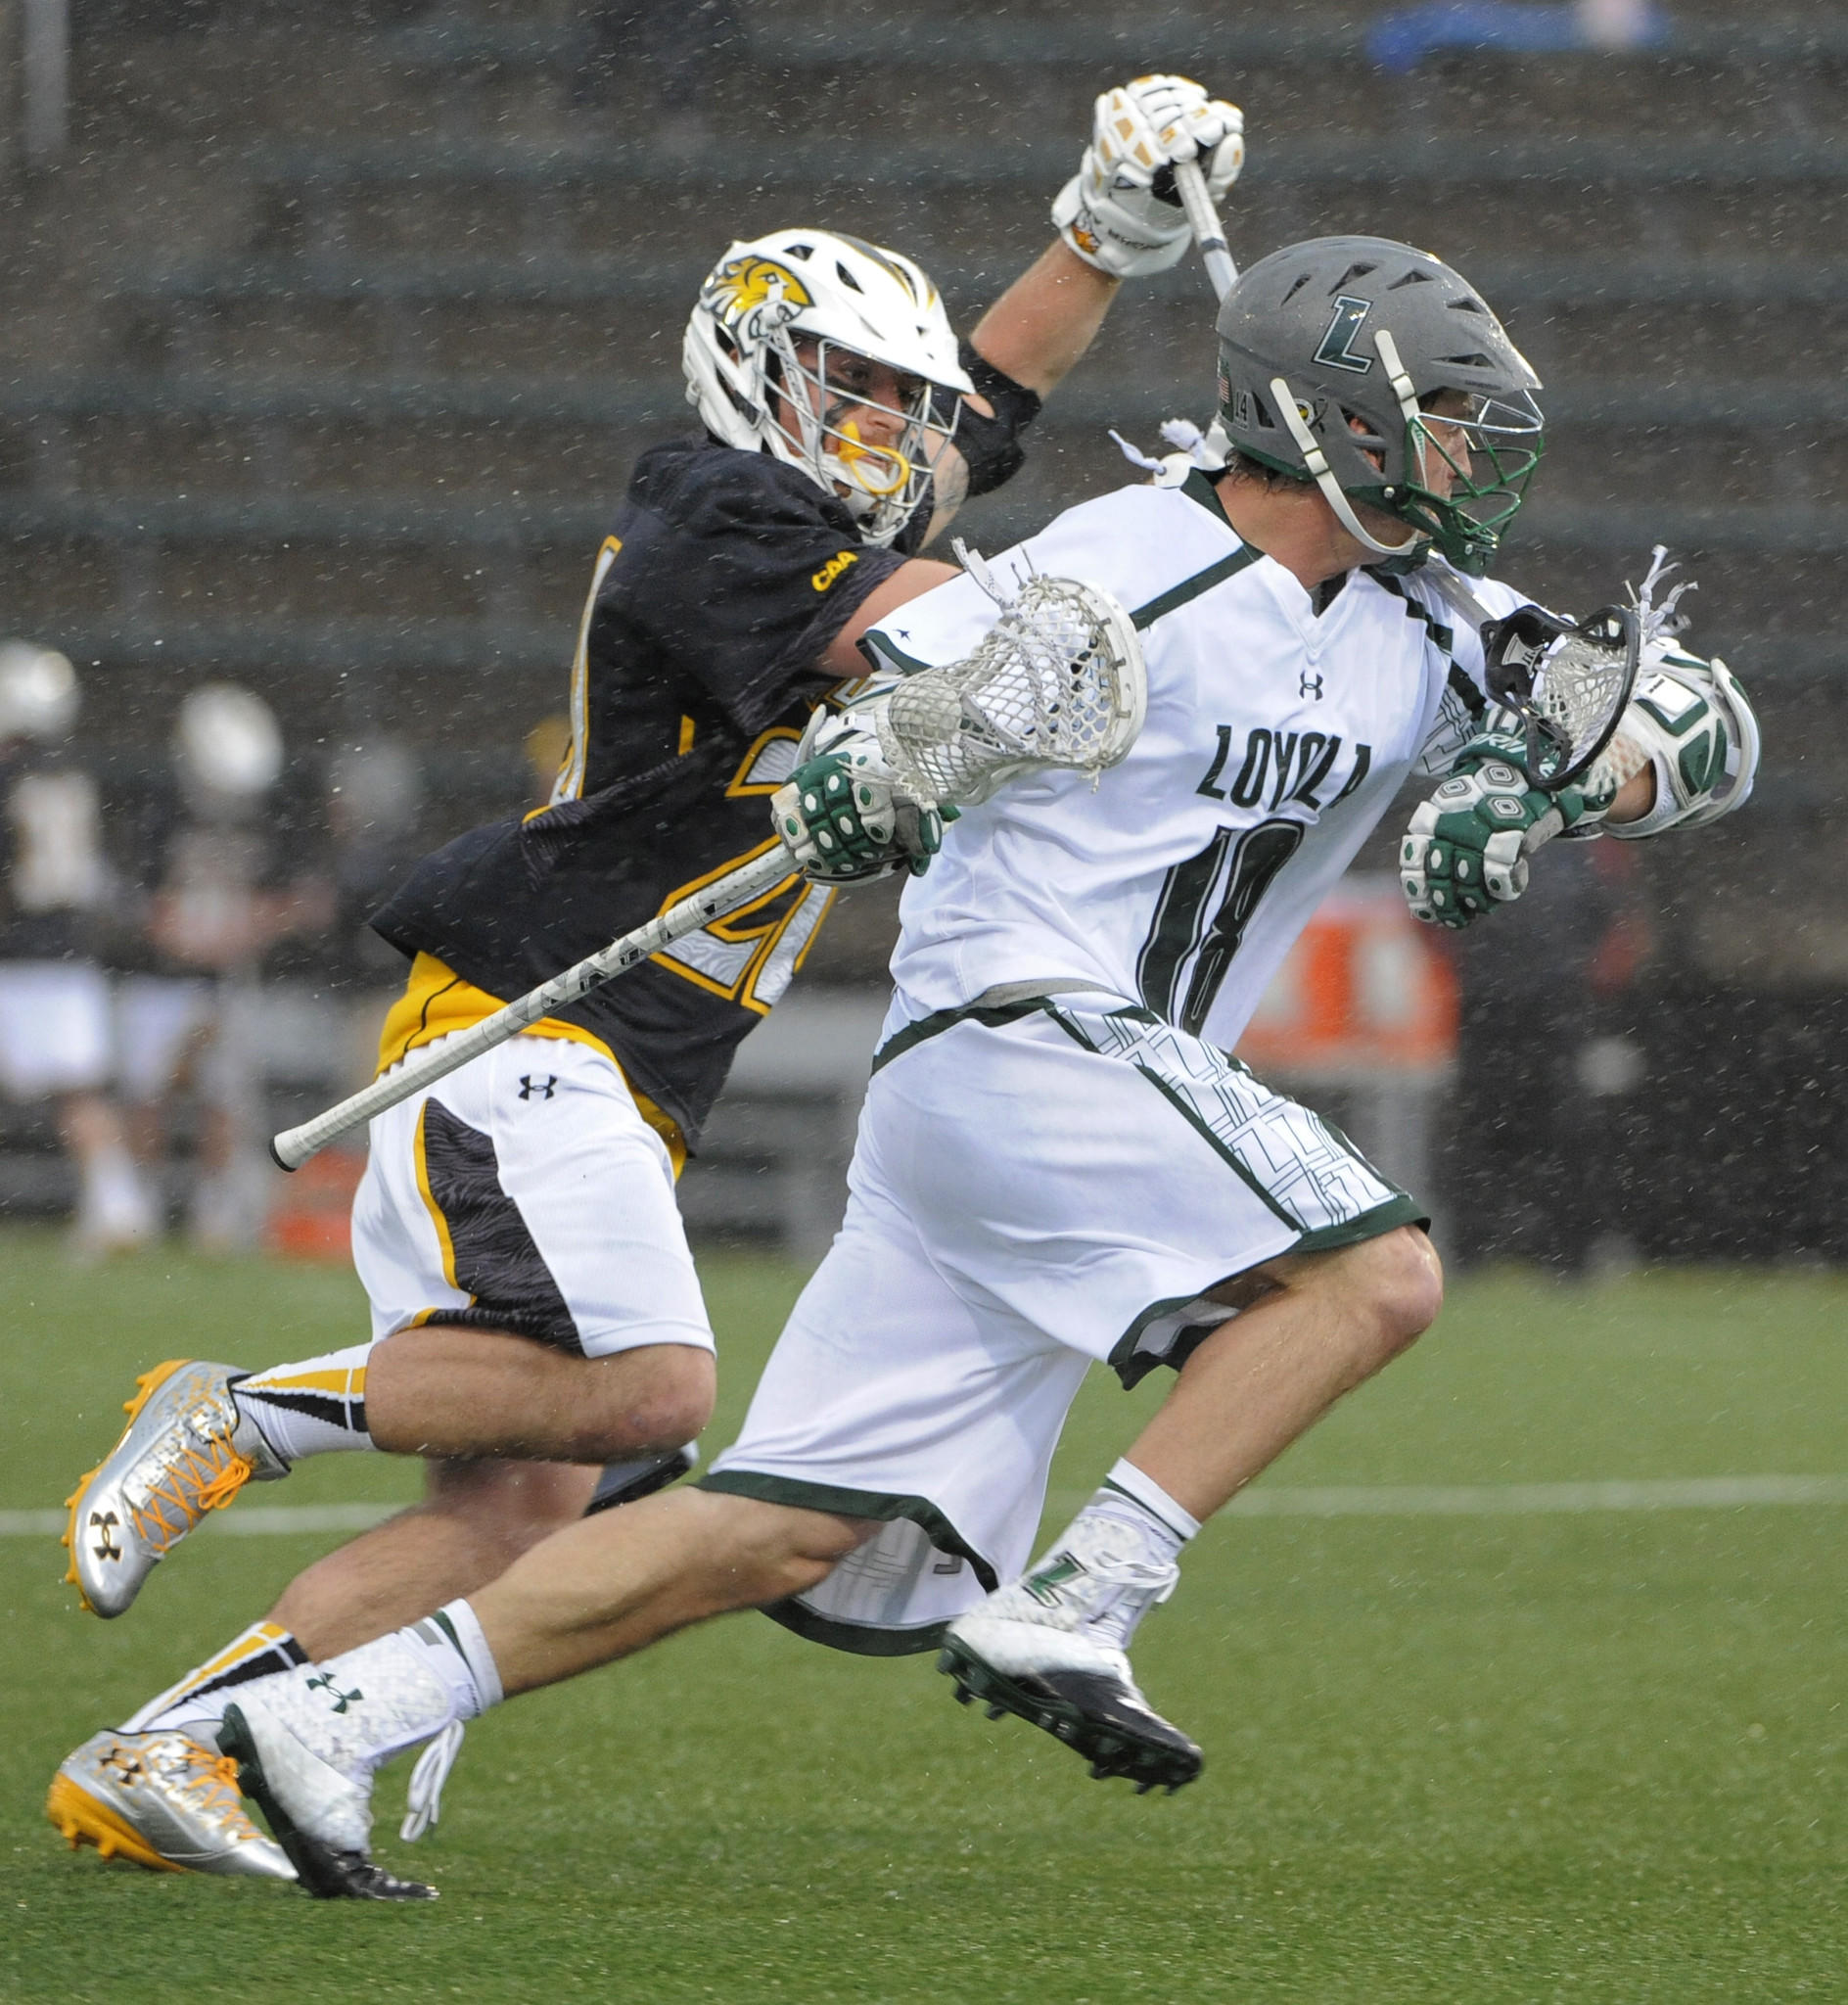 Loyola's Nikko Pontrello tries to get by Towson's Mike Lowe in the first half in February.